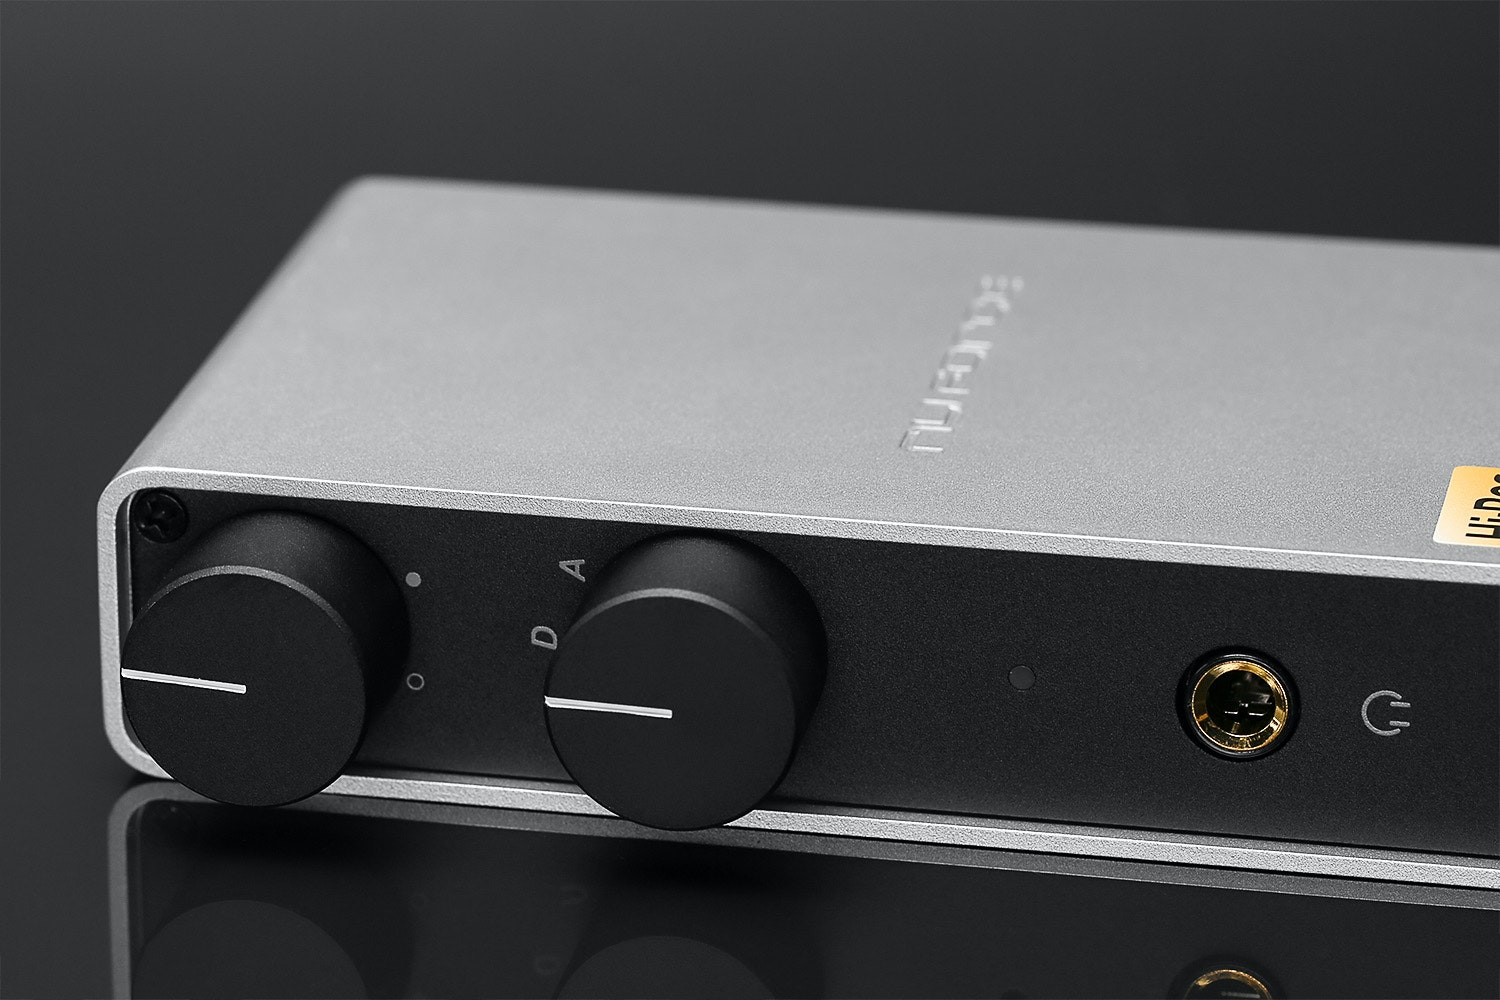 NuForce Icon HDP DAC/Amp - Massdrop Exclusive